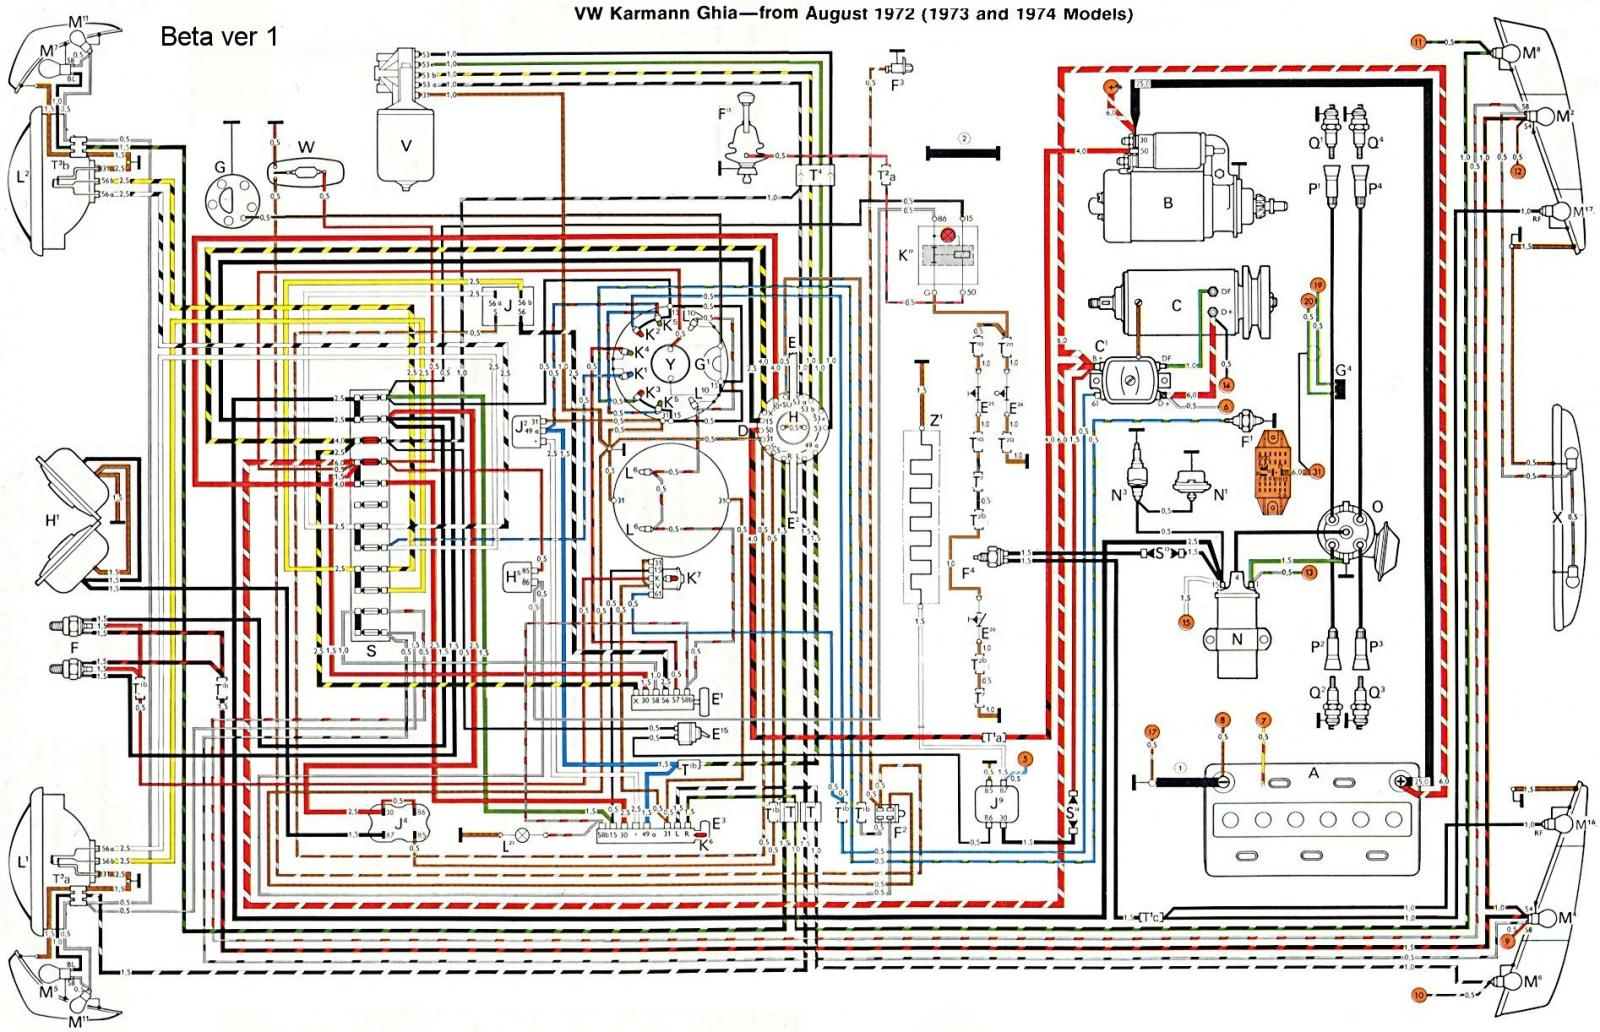 1188328 thesamba com ghia view topic 73 74 wiring diagram 74 karmann ghia wiring diagram at soozxer.org